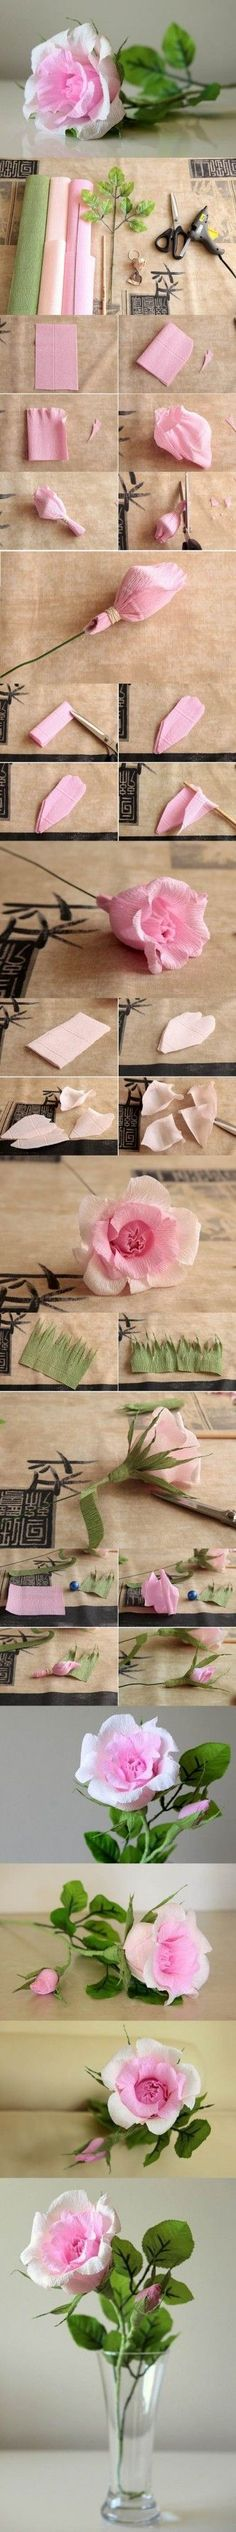 DIY Beautiful Pink Crepe Paper Rose 1